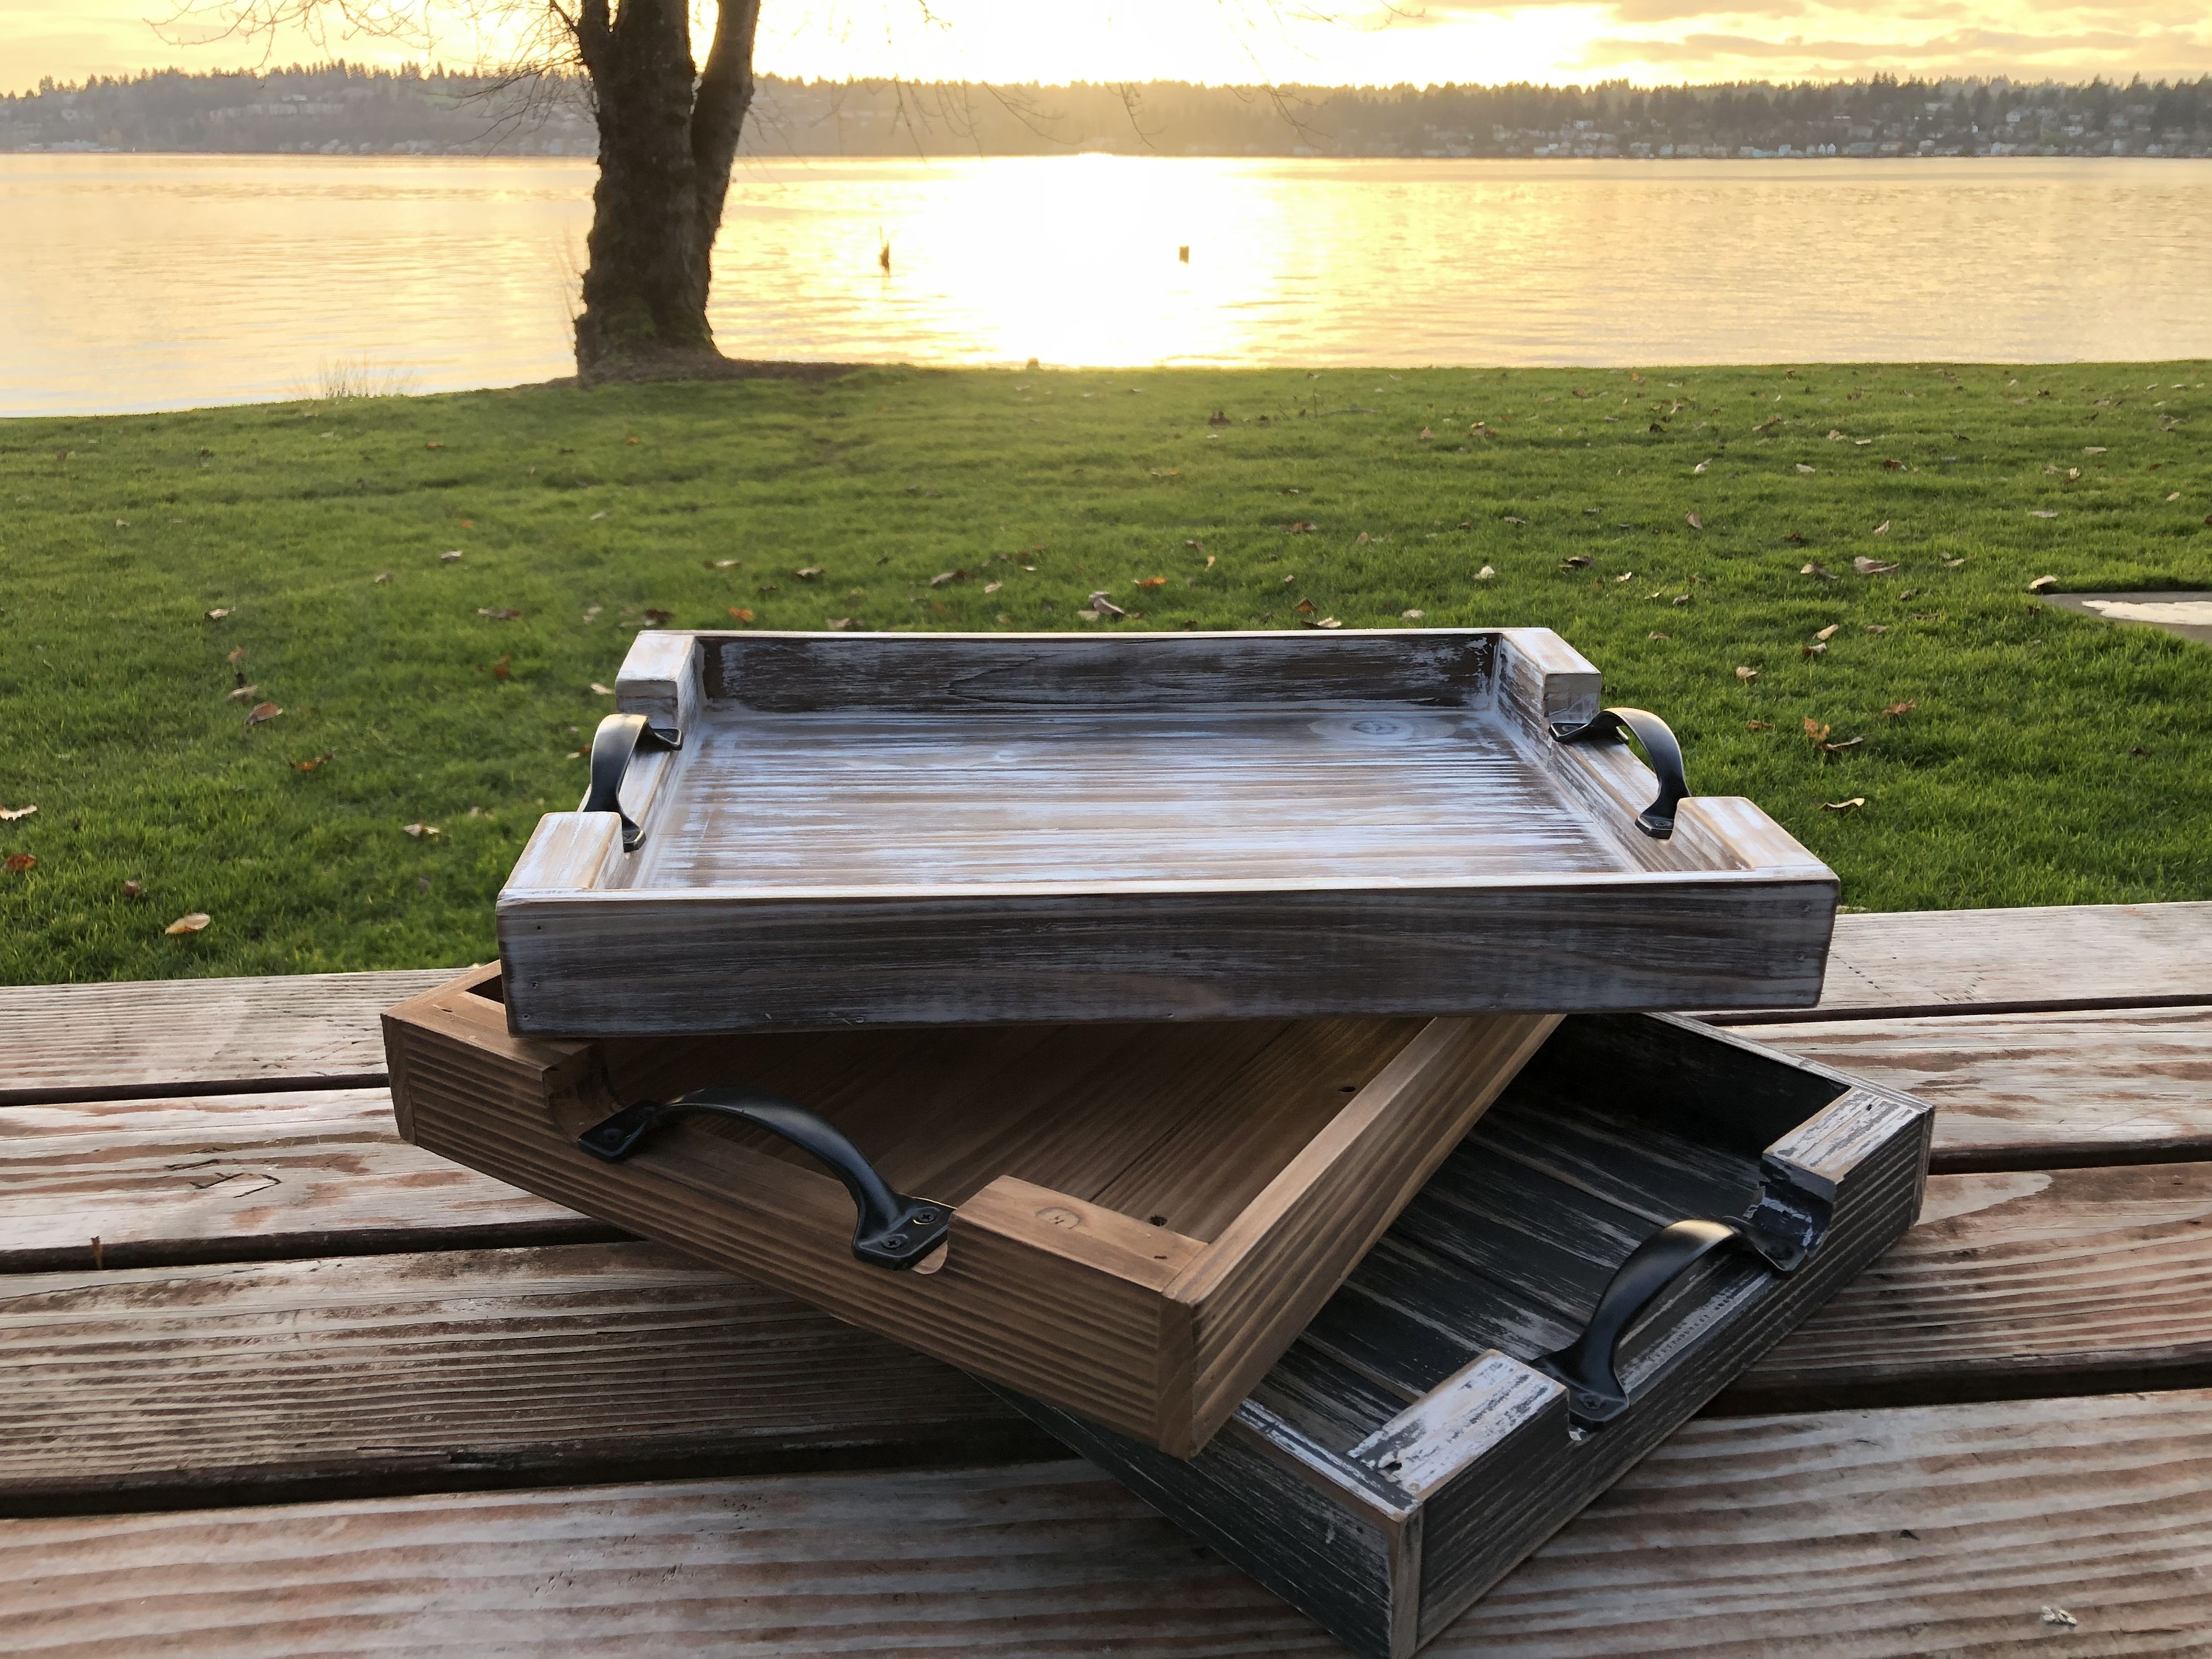 """The """"Abigail"""" trays stacked up in a staggered manner with a beautiful sunset and lake in the background.       #sunset #sunsetphotography #lakelife #lake #servingboard #servingplatter #servingtray #tray #traytable #woodtray #ottomantray #cozy #lifeisgood #lifeisbeautiful #loveyourselffirst #loveyourlife"""